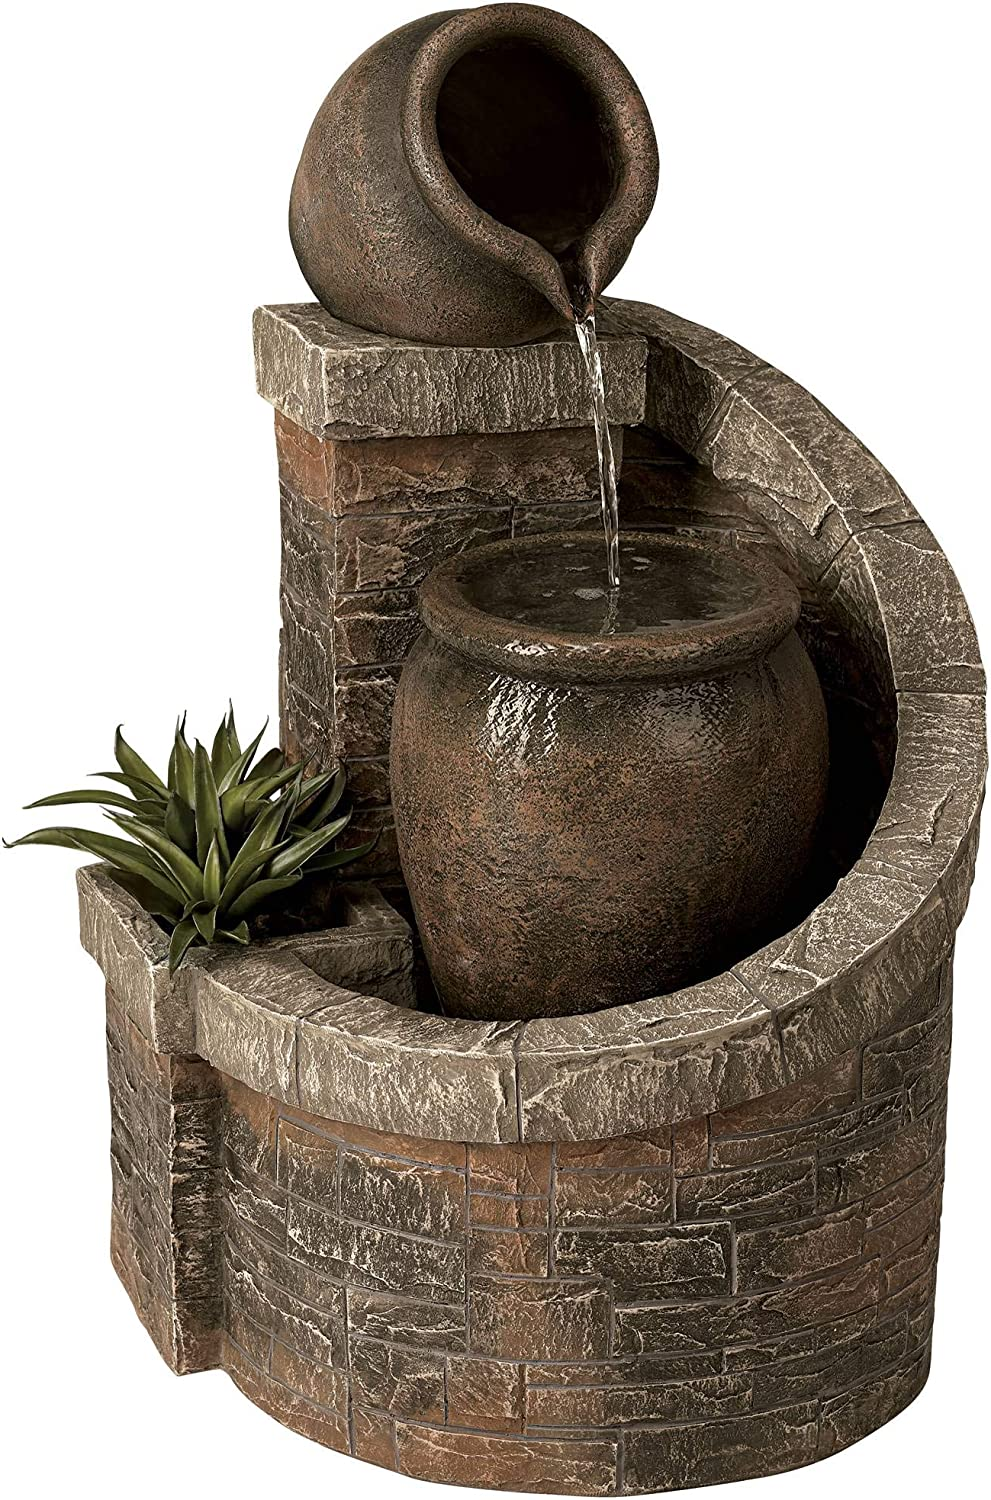 "John Timberland Verona Faux Brick Indoor/Outdoor 35"" H Garden LED Fountain"